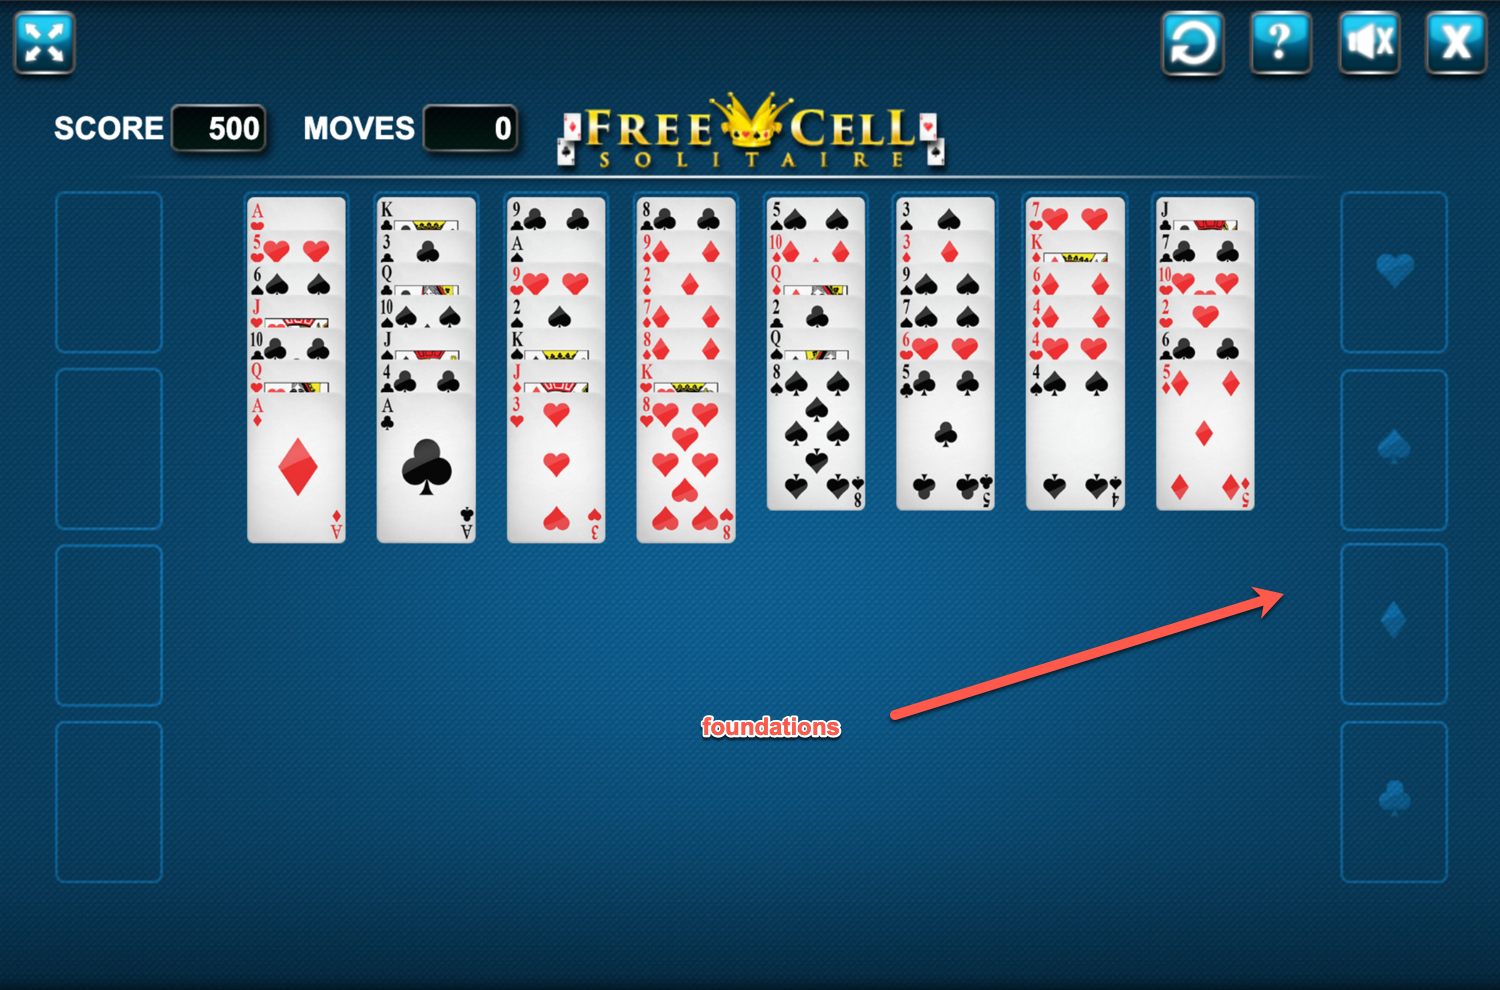 Freecell Solitaire Foundations Screenshot.